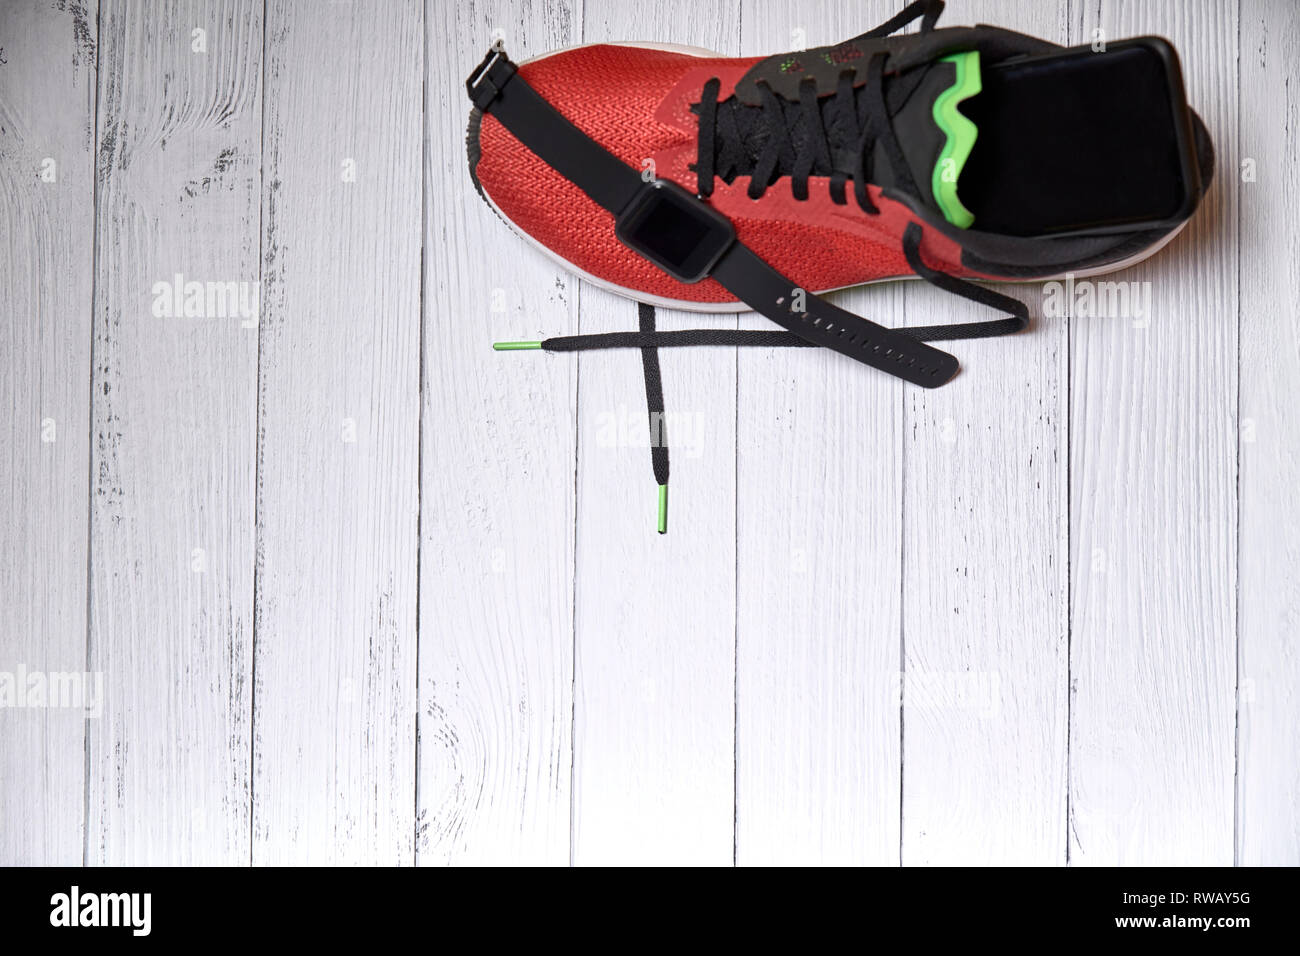 running shoes with technological accessories on white wooden boards - Stock Image